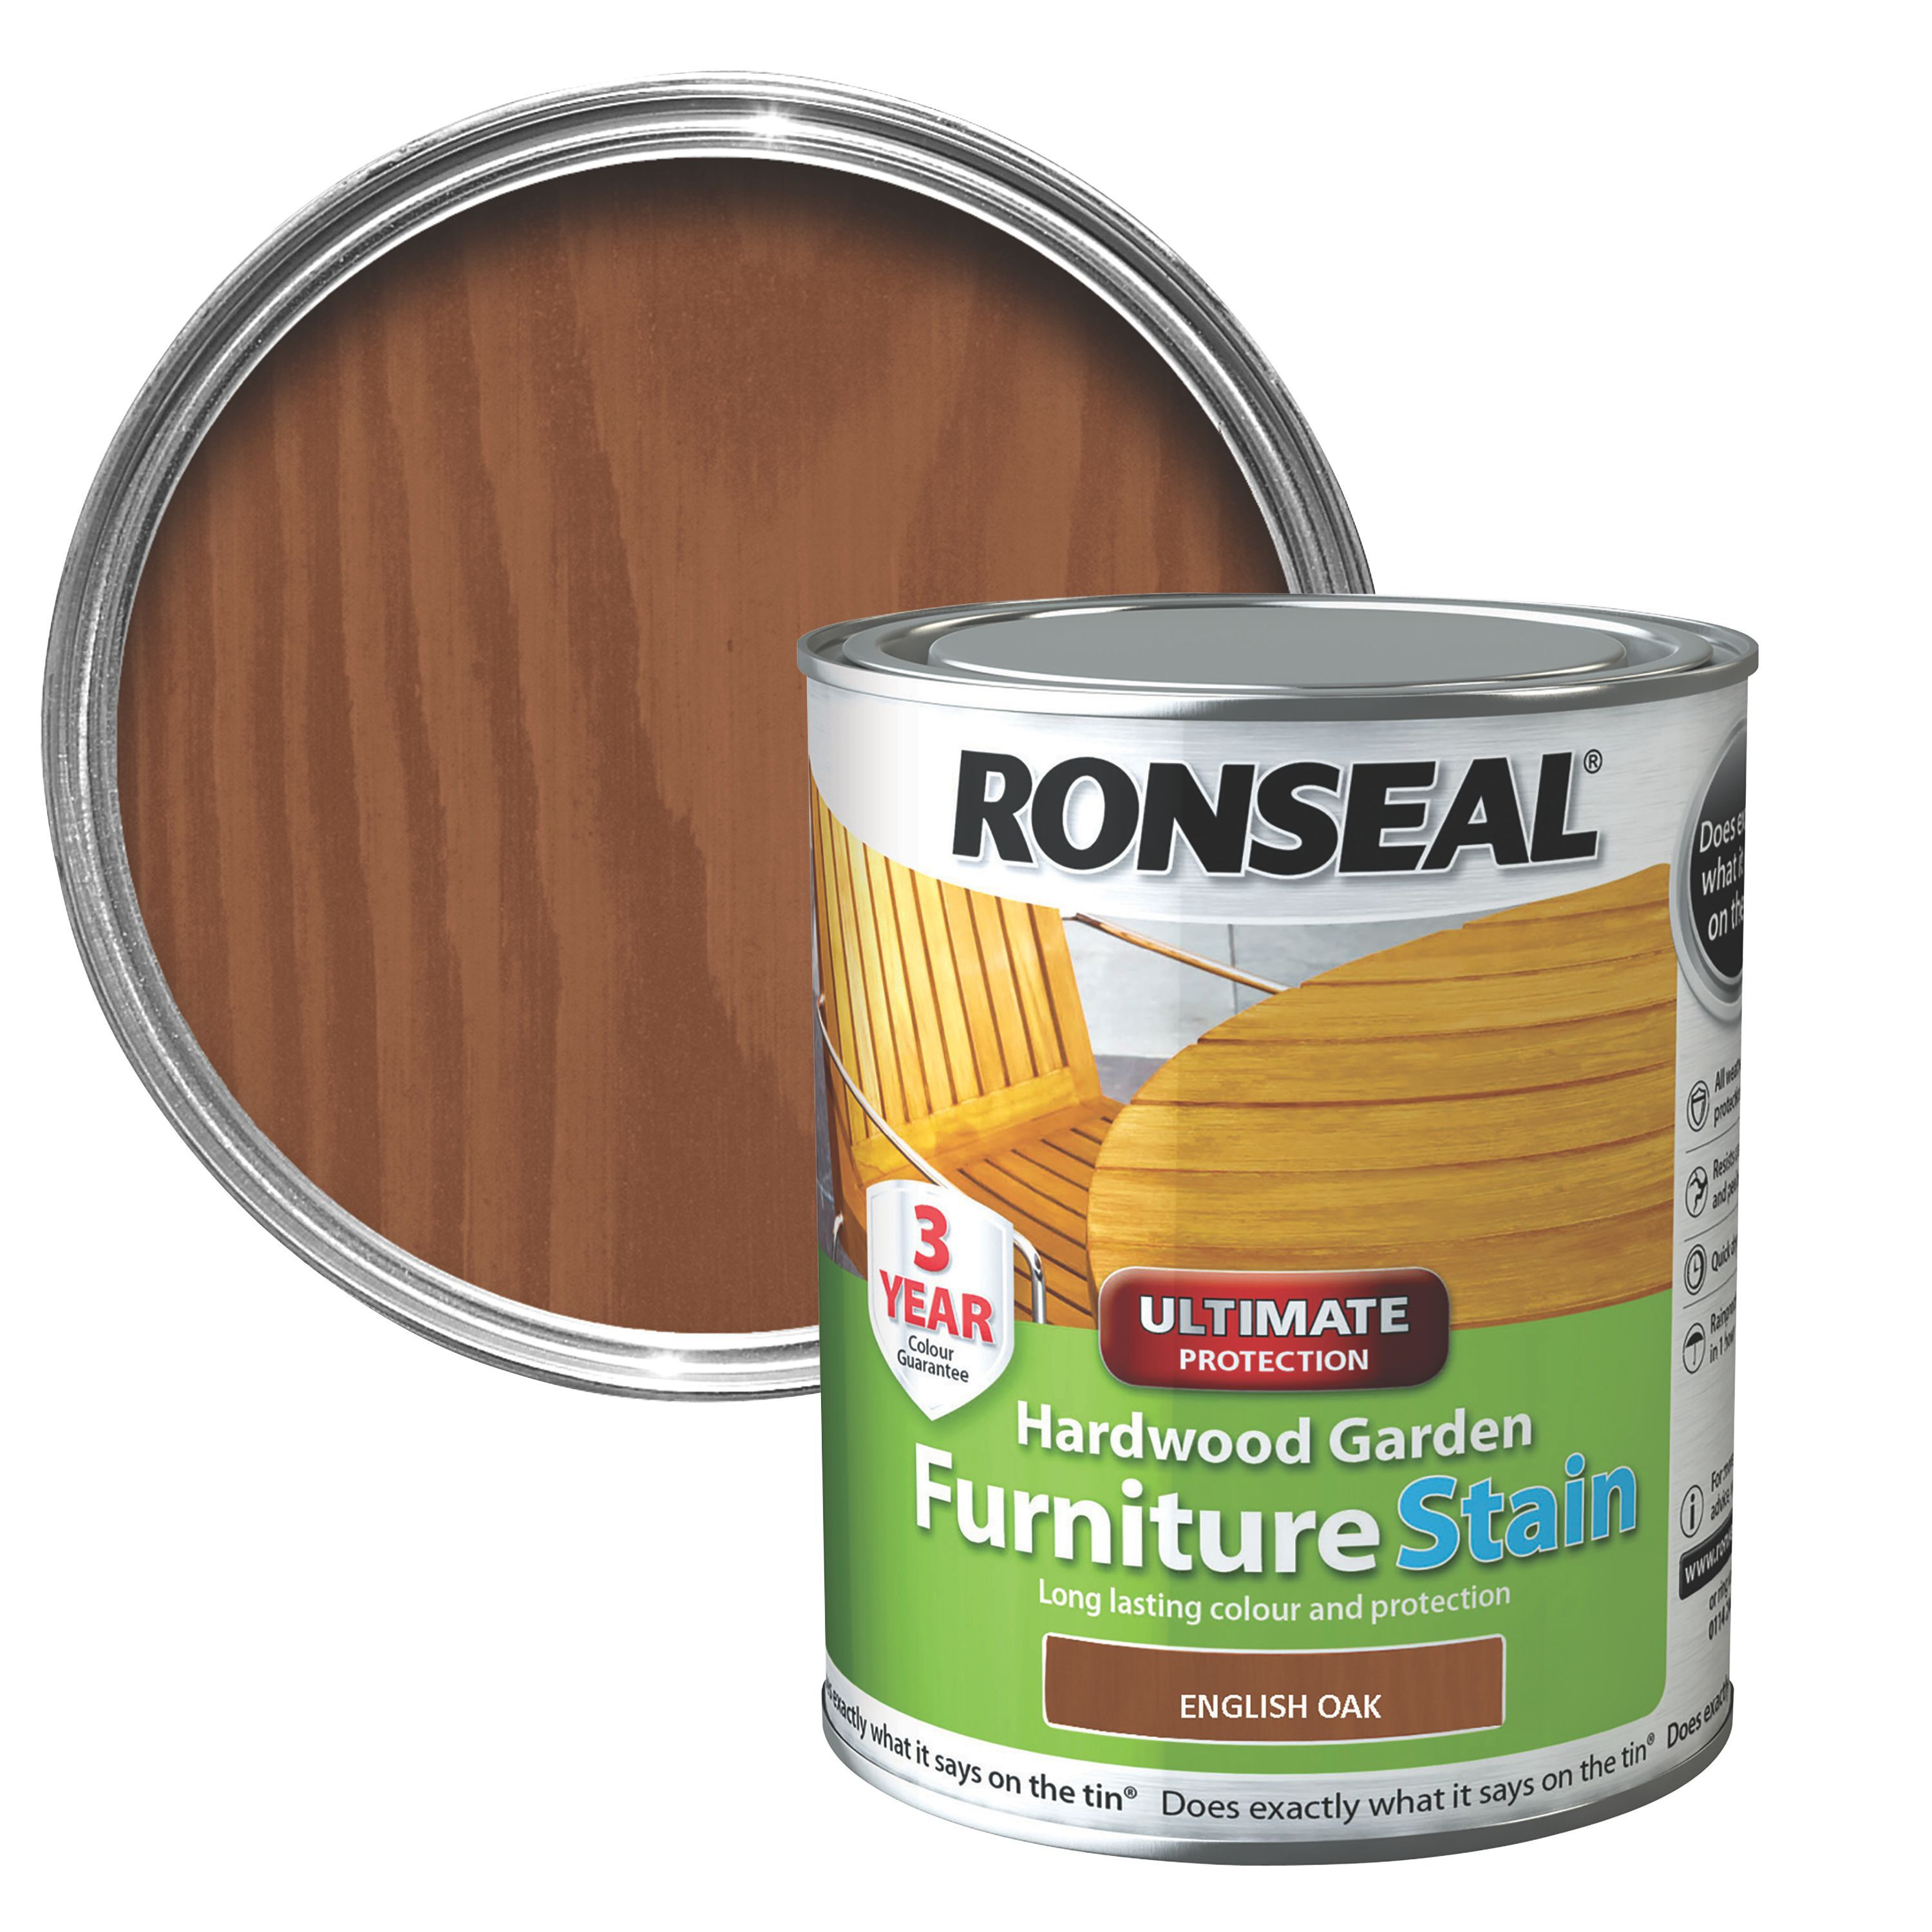 ronseal hardwood english oak hardwood garden furniture stain 075l departments diy at bq - Garden Furniture Stain